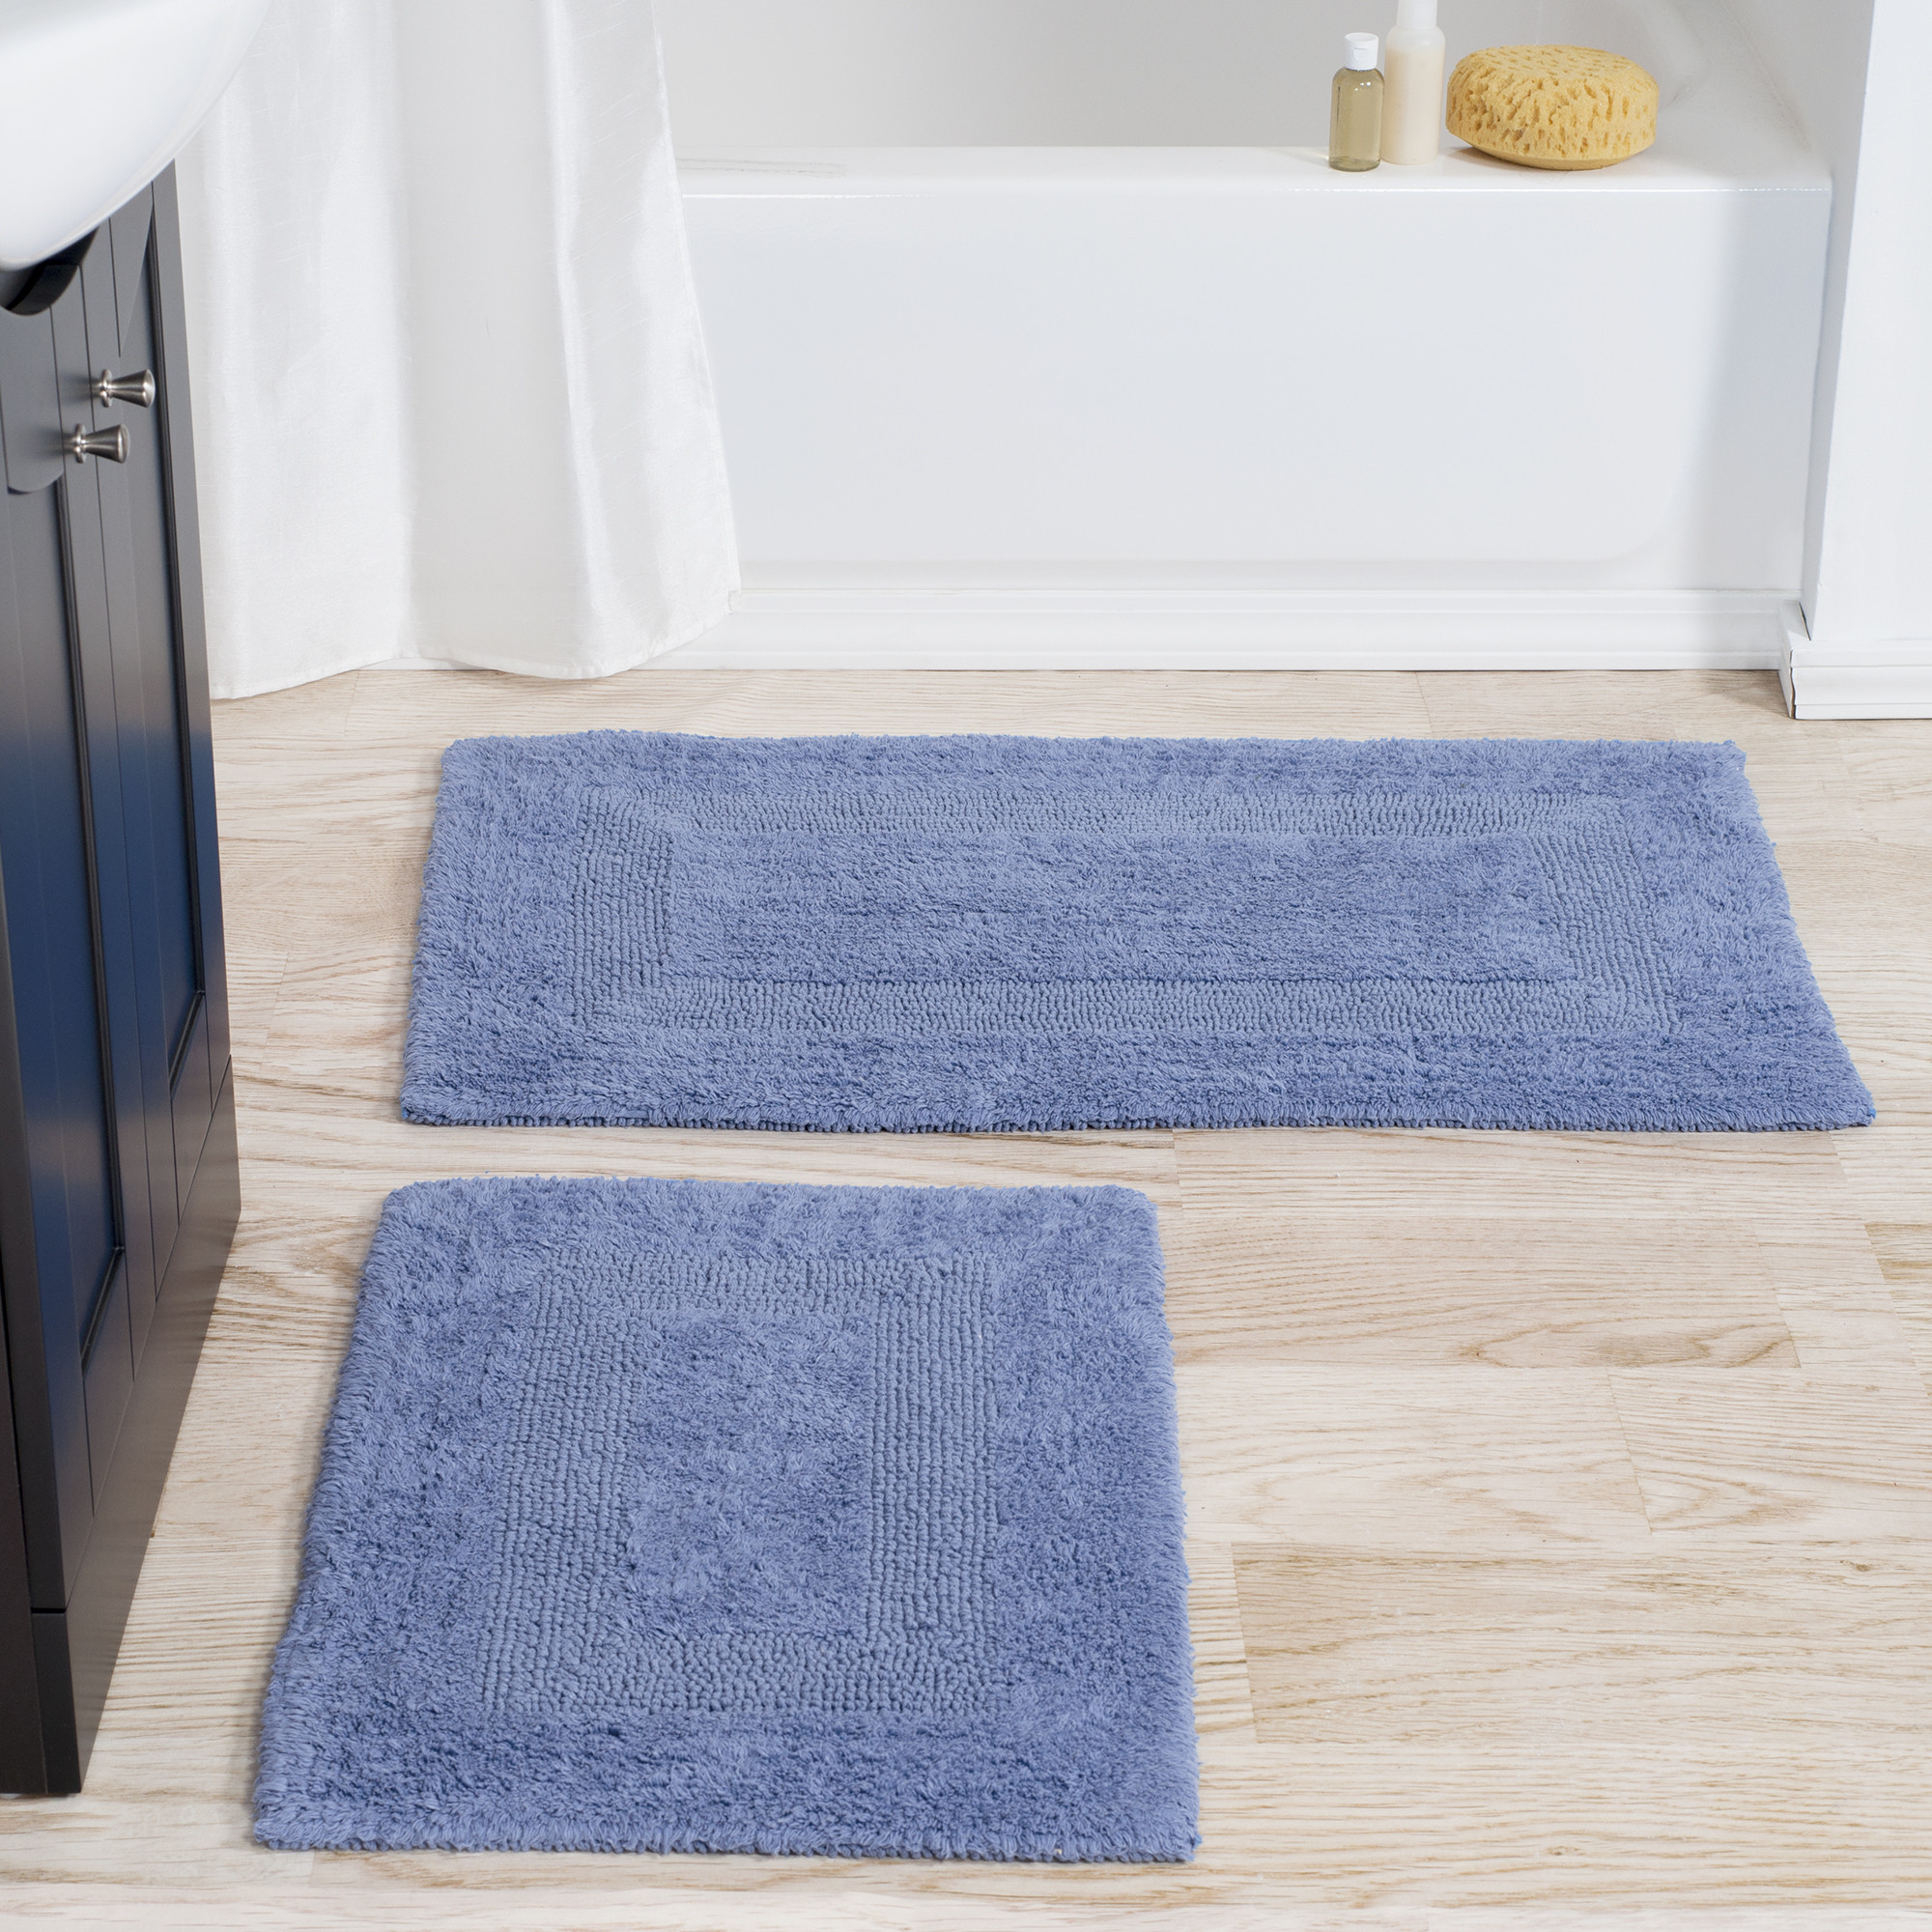 Cool Light Blue Bathroom Rug Sets Lighting Bath Mat Set Cobalt Dark Navy inside Blue Bathroom Rug Sets